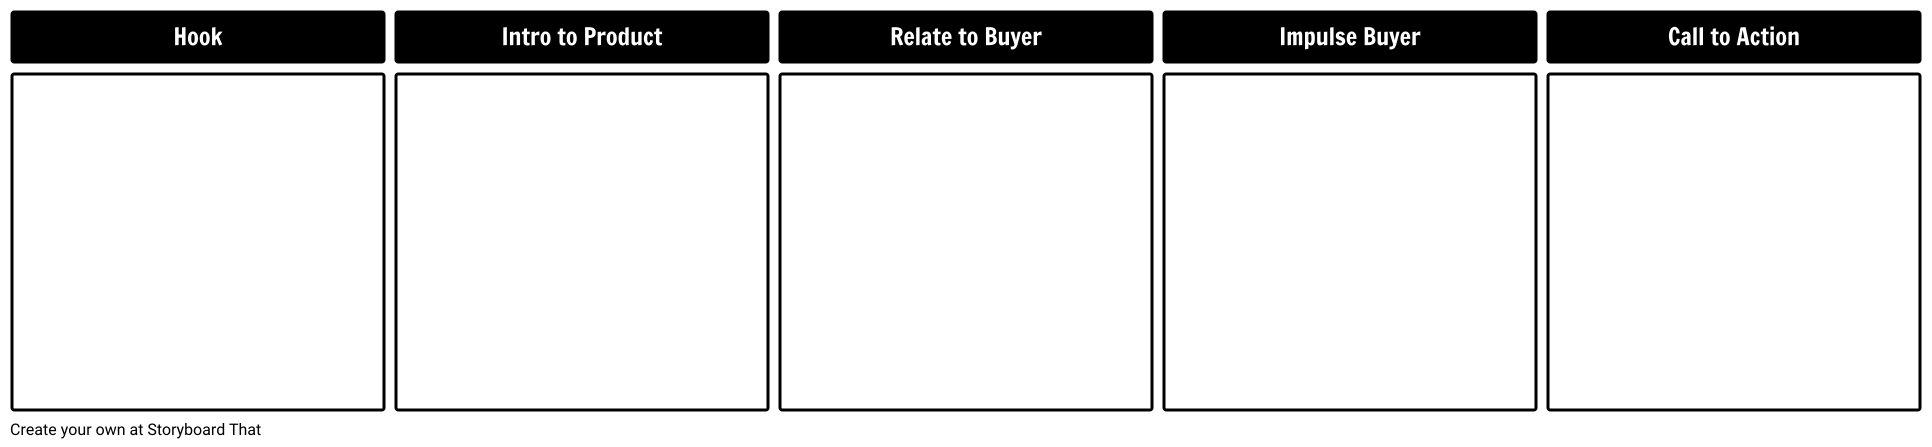 Sales Pitch Template